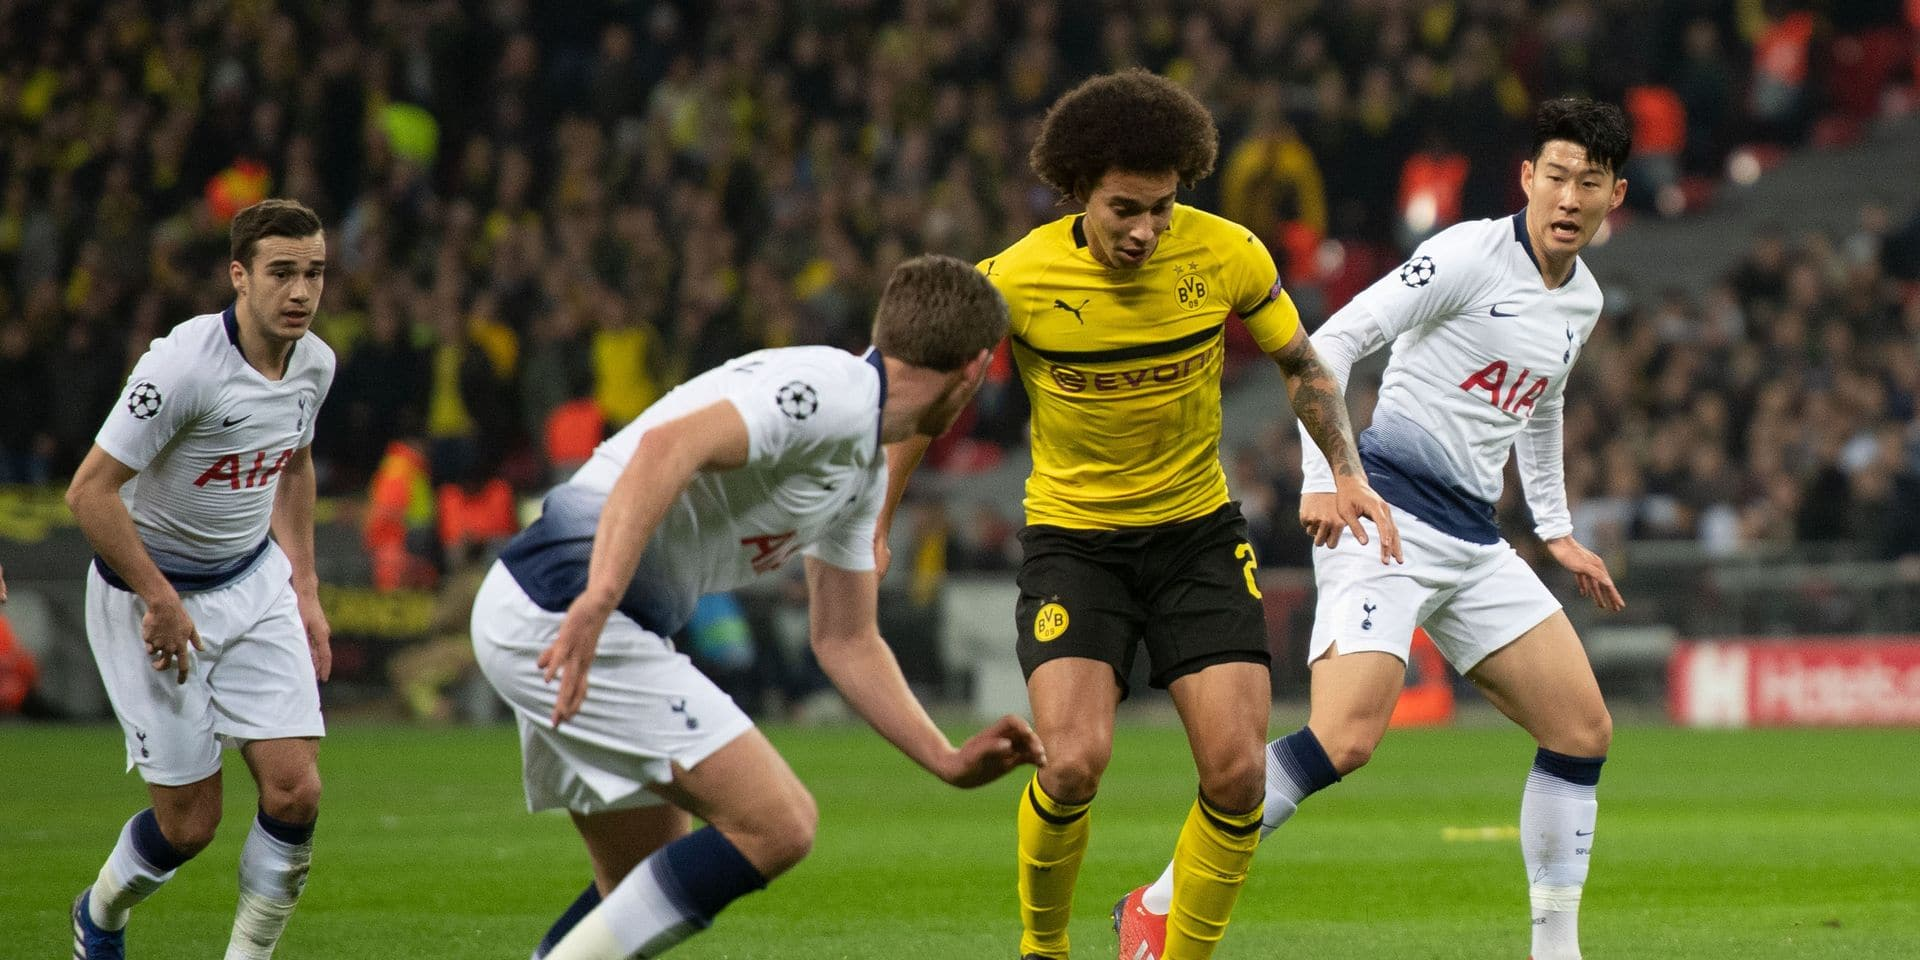 13 February 2019, Great Britain, London: Soccer: Champions League, Tottenham Hotspur - Borussia Dortmund, knockout round, round of sixteen, first legs at Wembley Stadium: Axel Witsel (2nd from right) and Jan Vertonghen (2nd from left) and Heung-Min Son (r) from Tottenham try to get the ball. Photo: Bernd Thissen/dpa Reporters / DPA